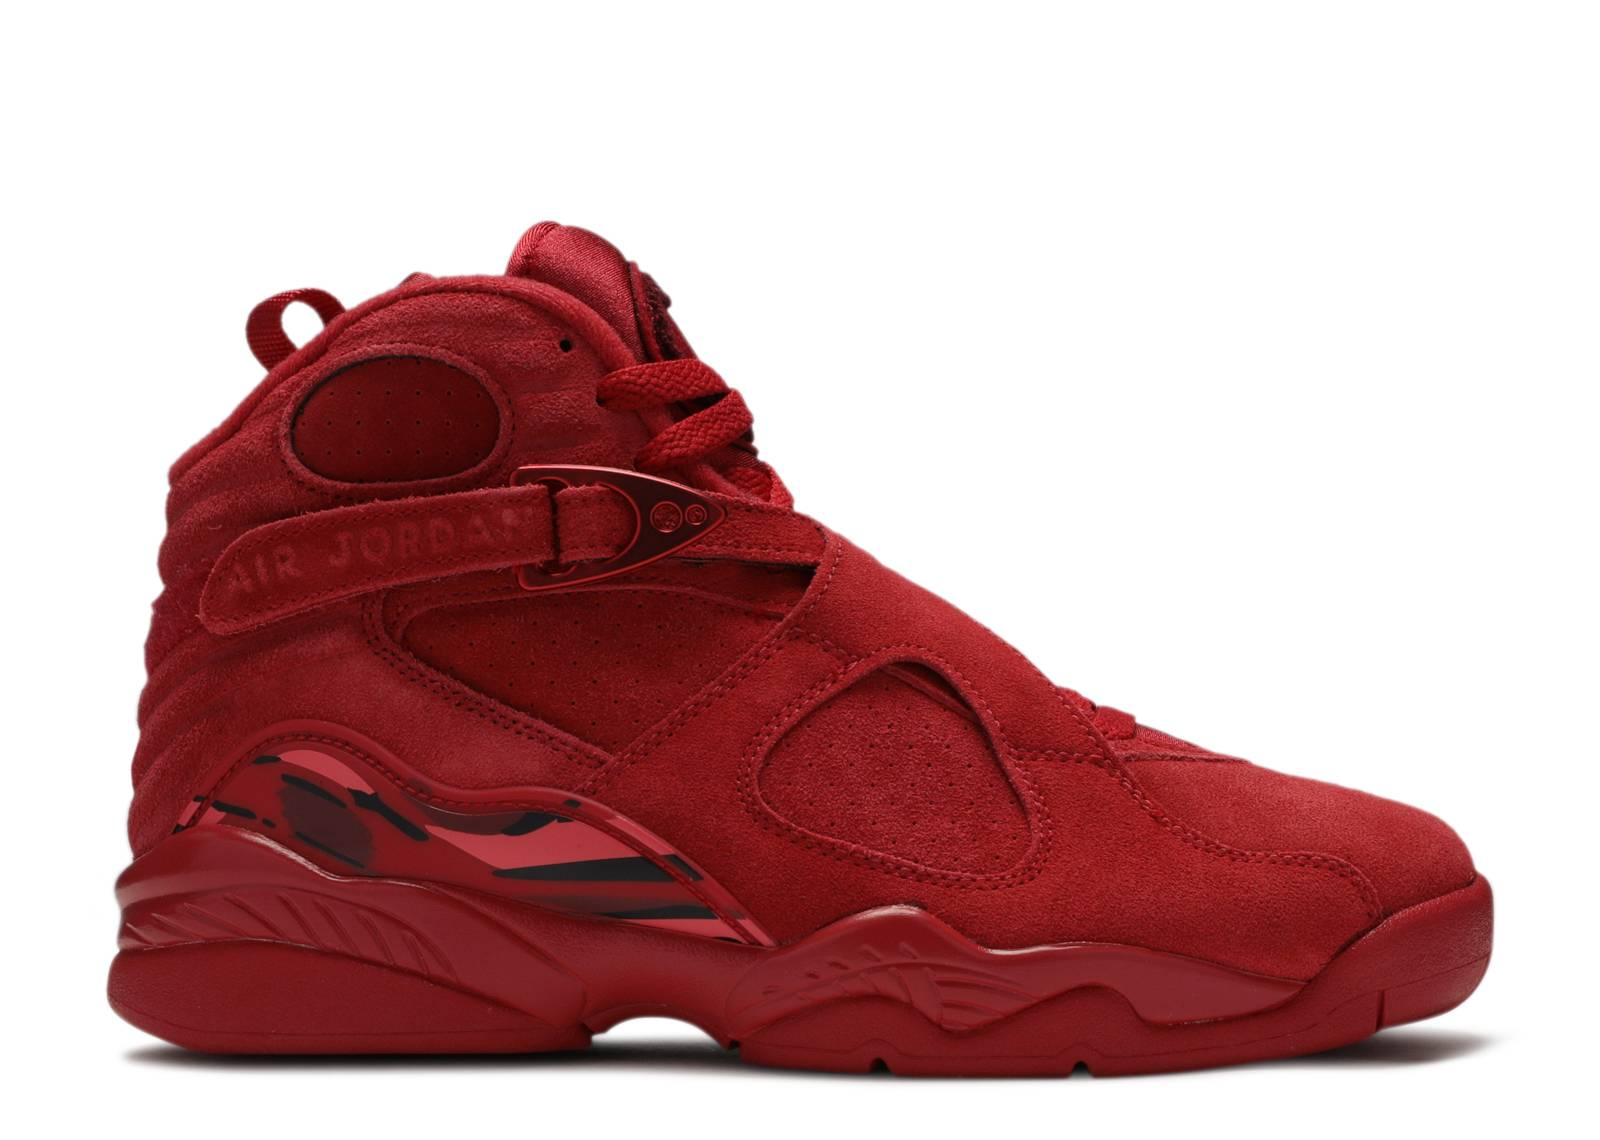 premium selection 3bc5c e18e6 wmns air jordan 8 retro vday